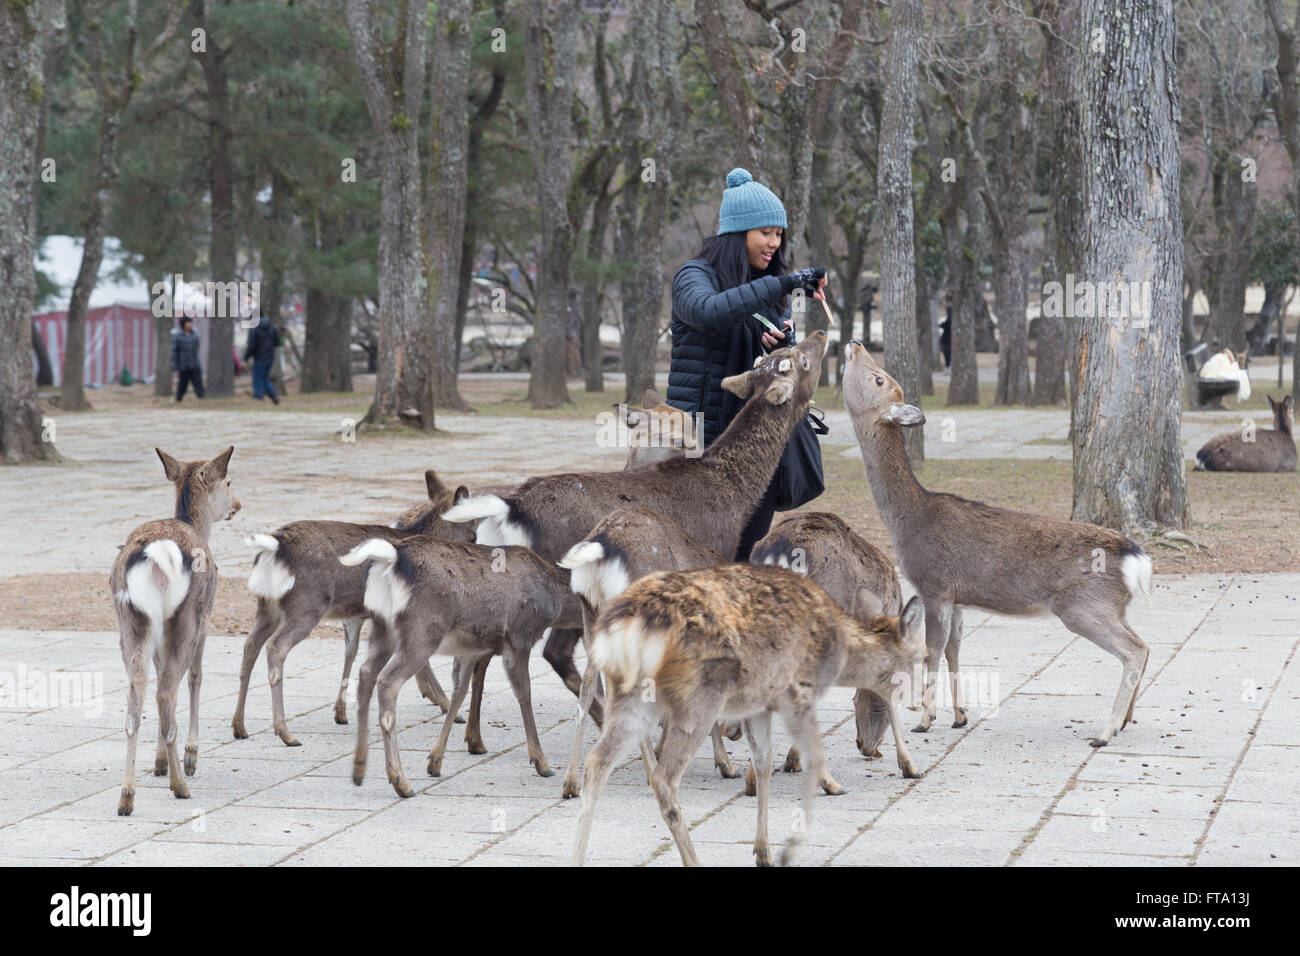 Nara, Japan - December 28, 2014: Visitor feeding tame wild deer in Nara Park. - Stock Image